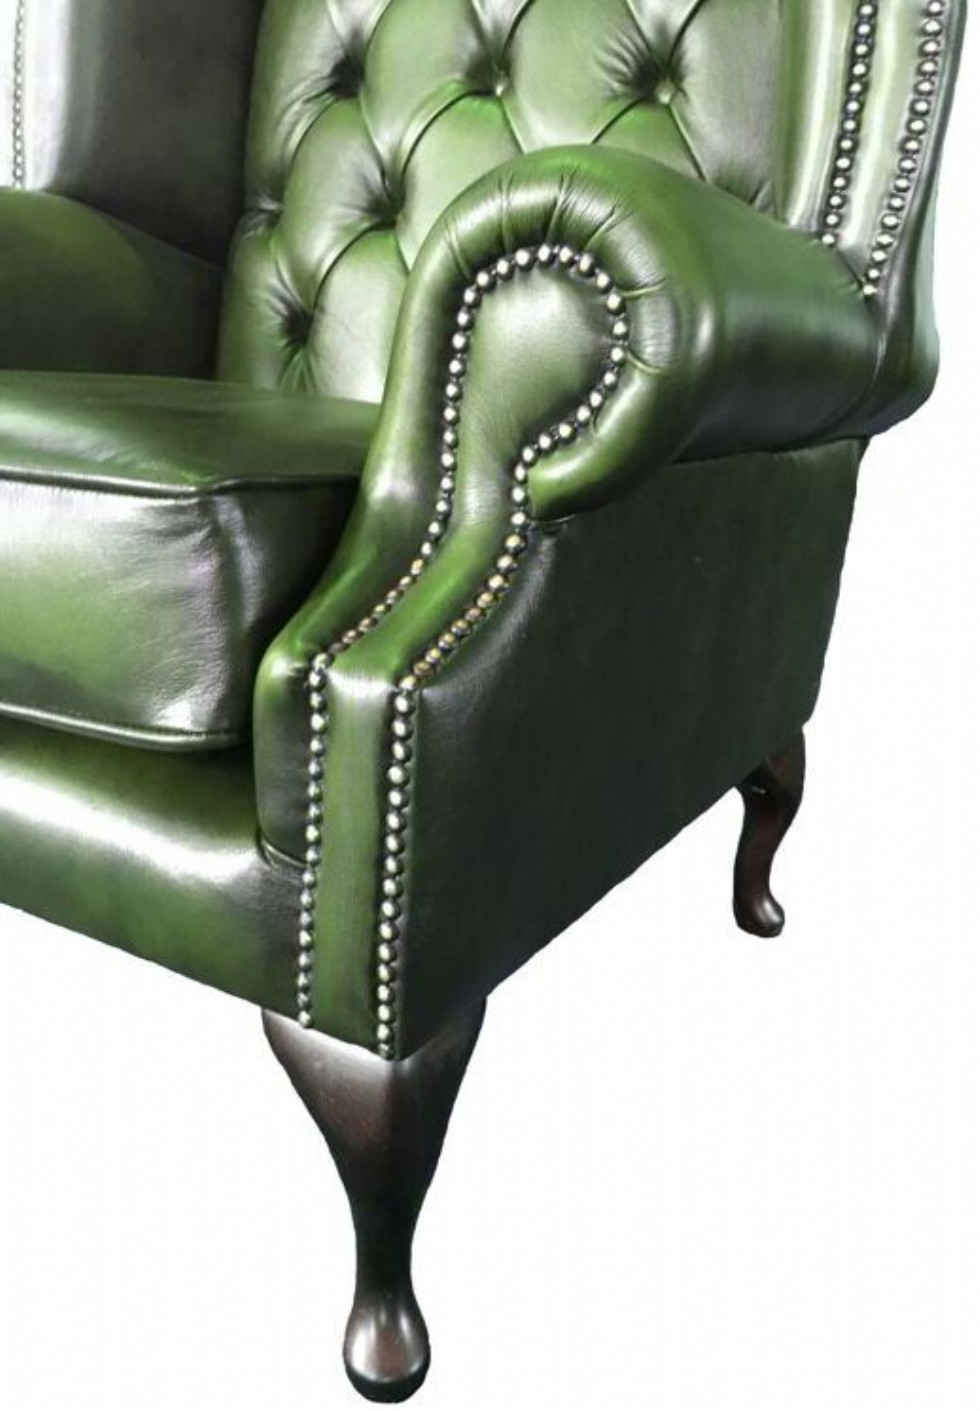 Kodu: 10896 - Chesterfield Sofa Models